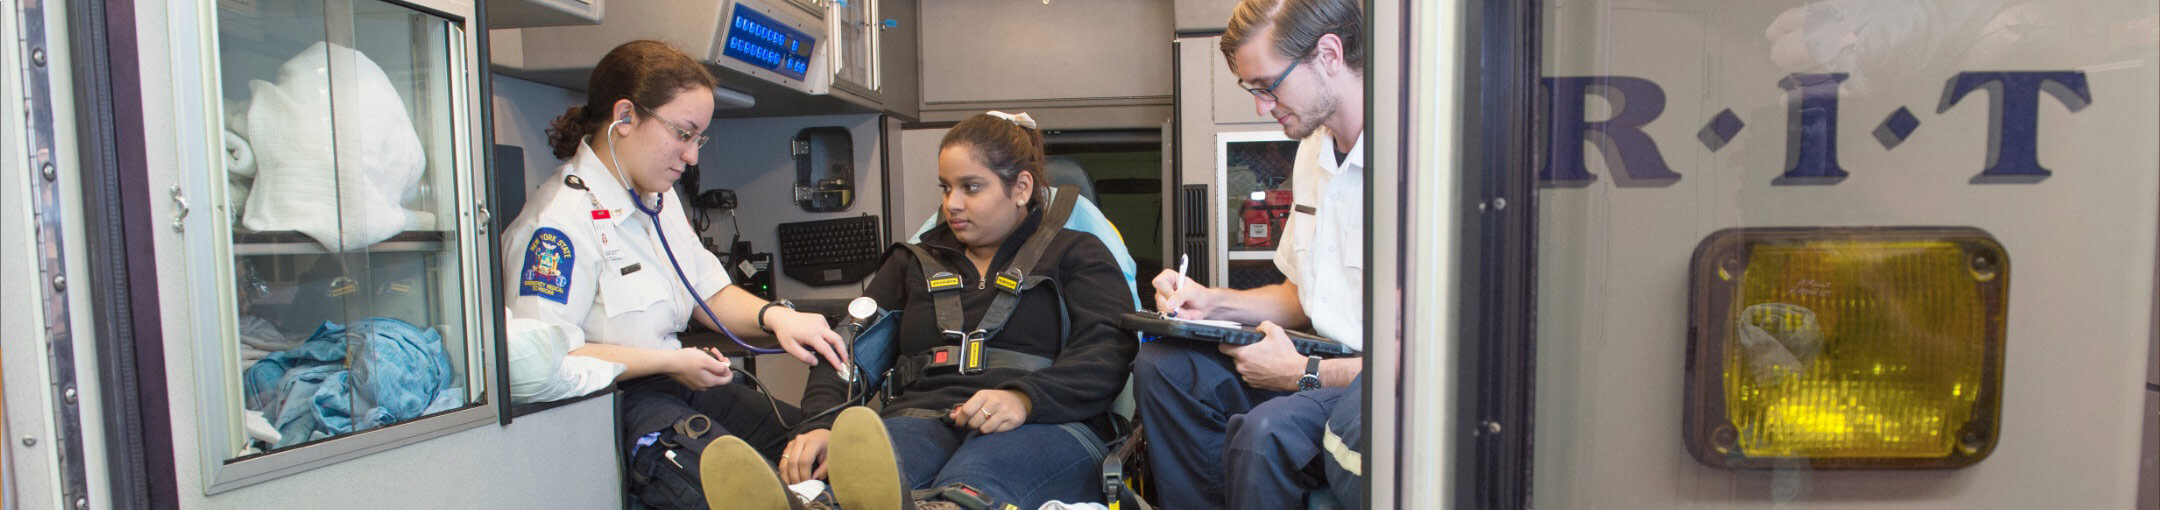 A person in the back of an ambulance with two health professionals.